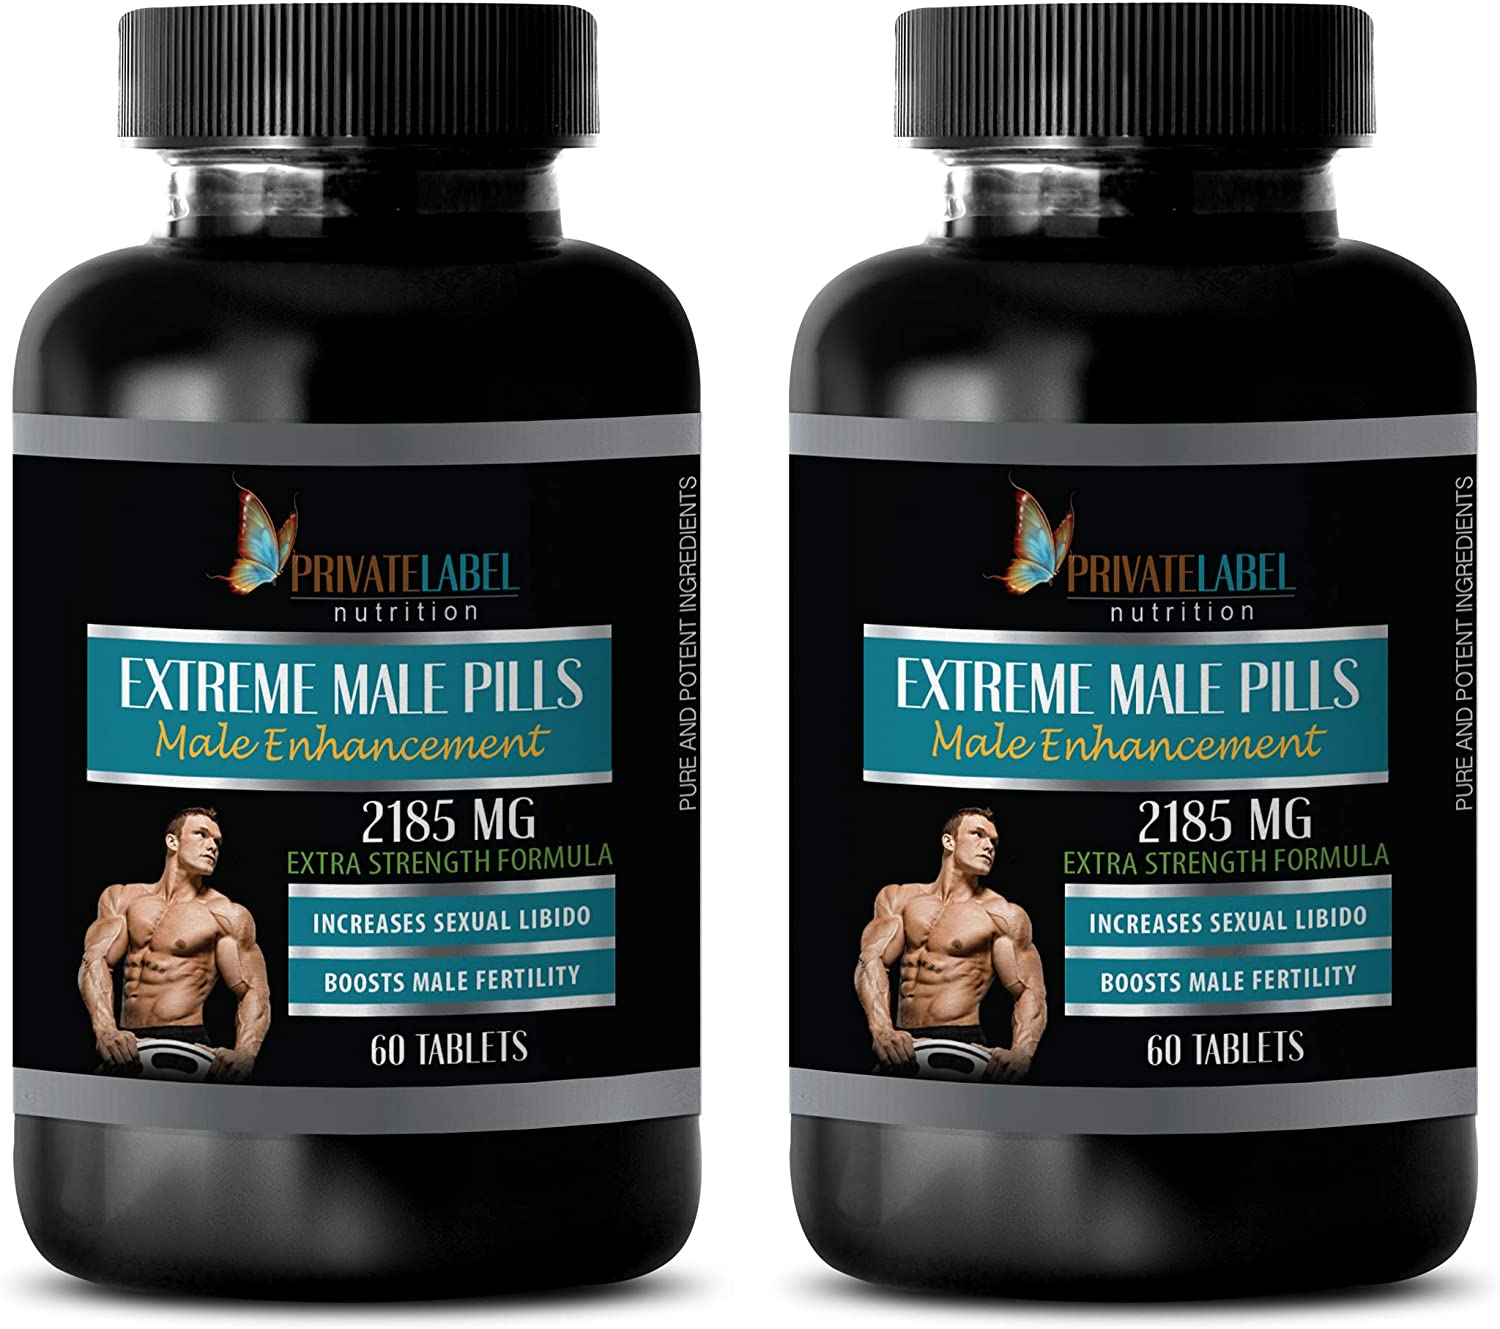 Male Enhancing Pills Increase Size and Girth - Extreme Male Pills 2185 Mg - Extra Strength Formula - longjack Extract supplemets - 2 Bottles 120 Tablets